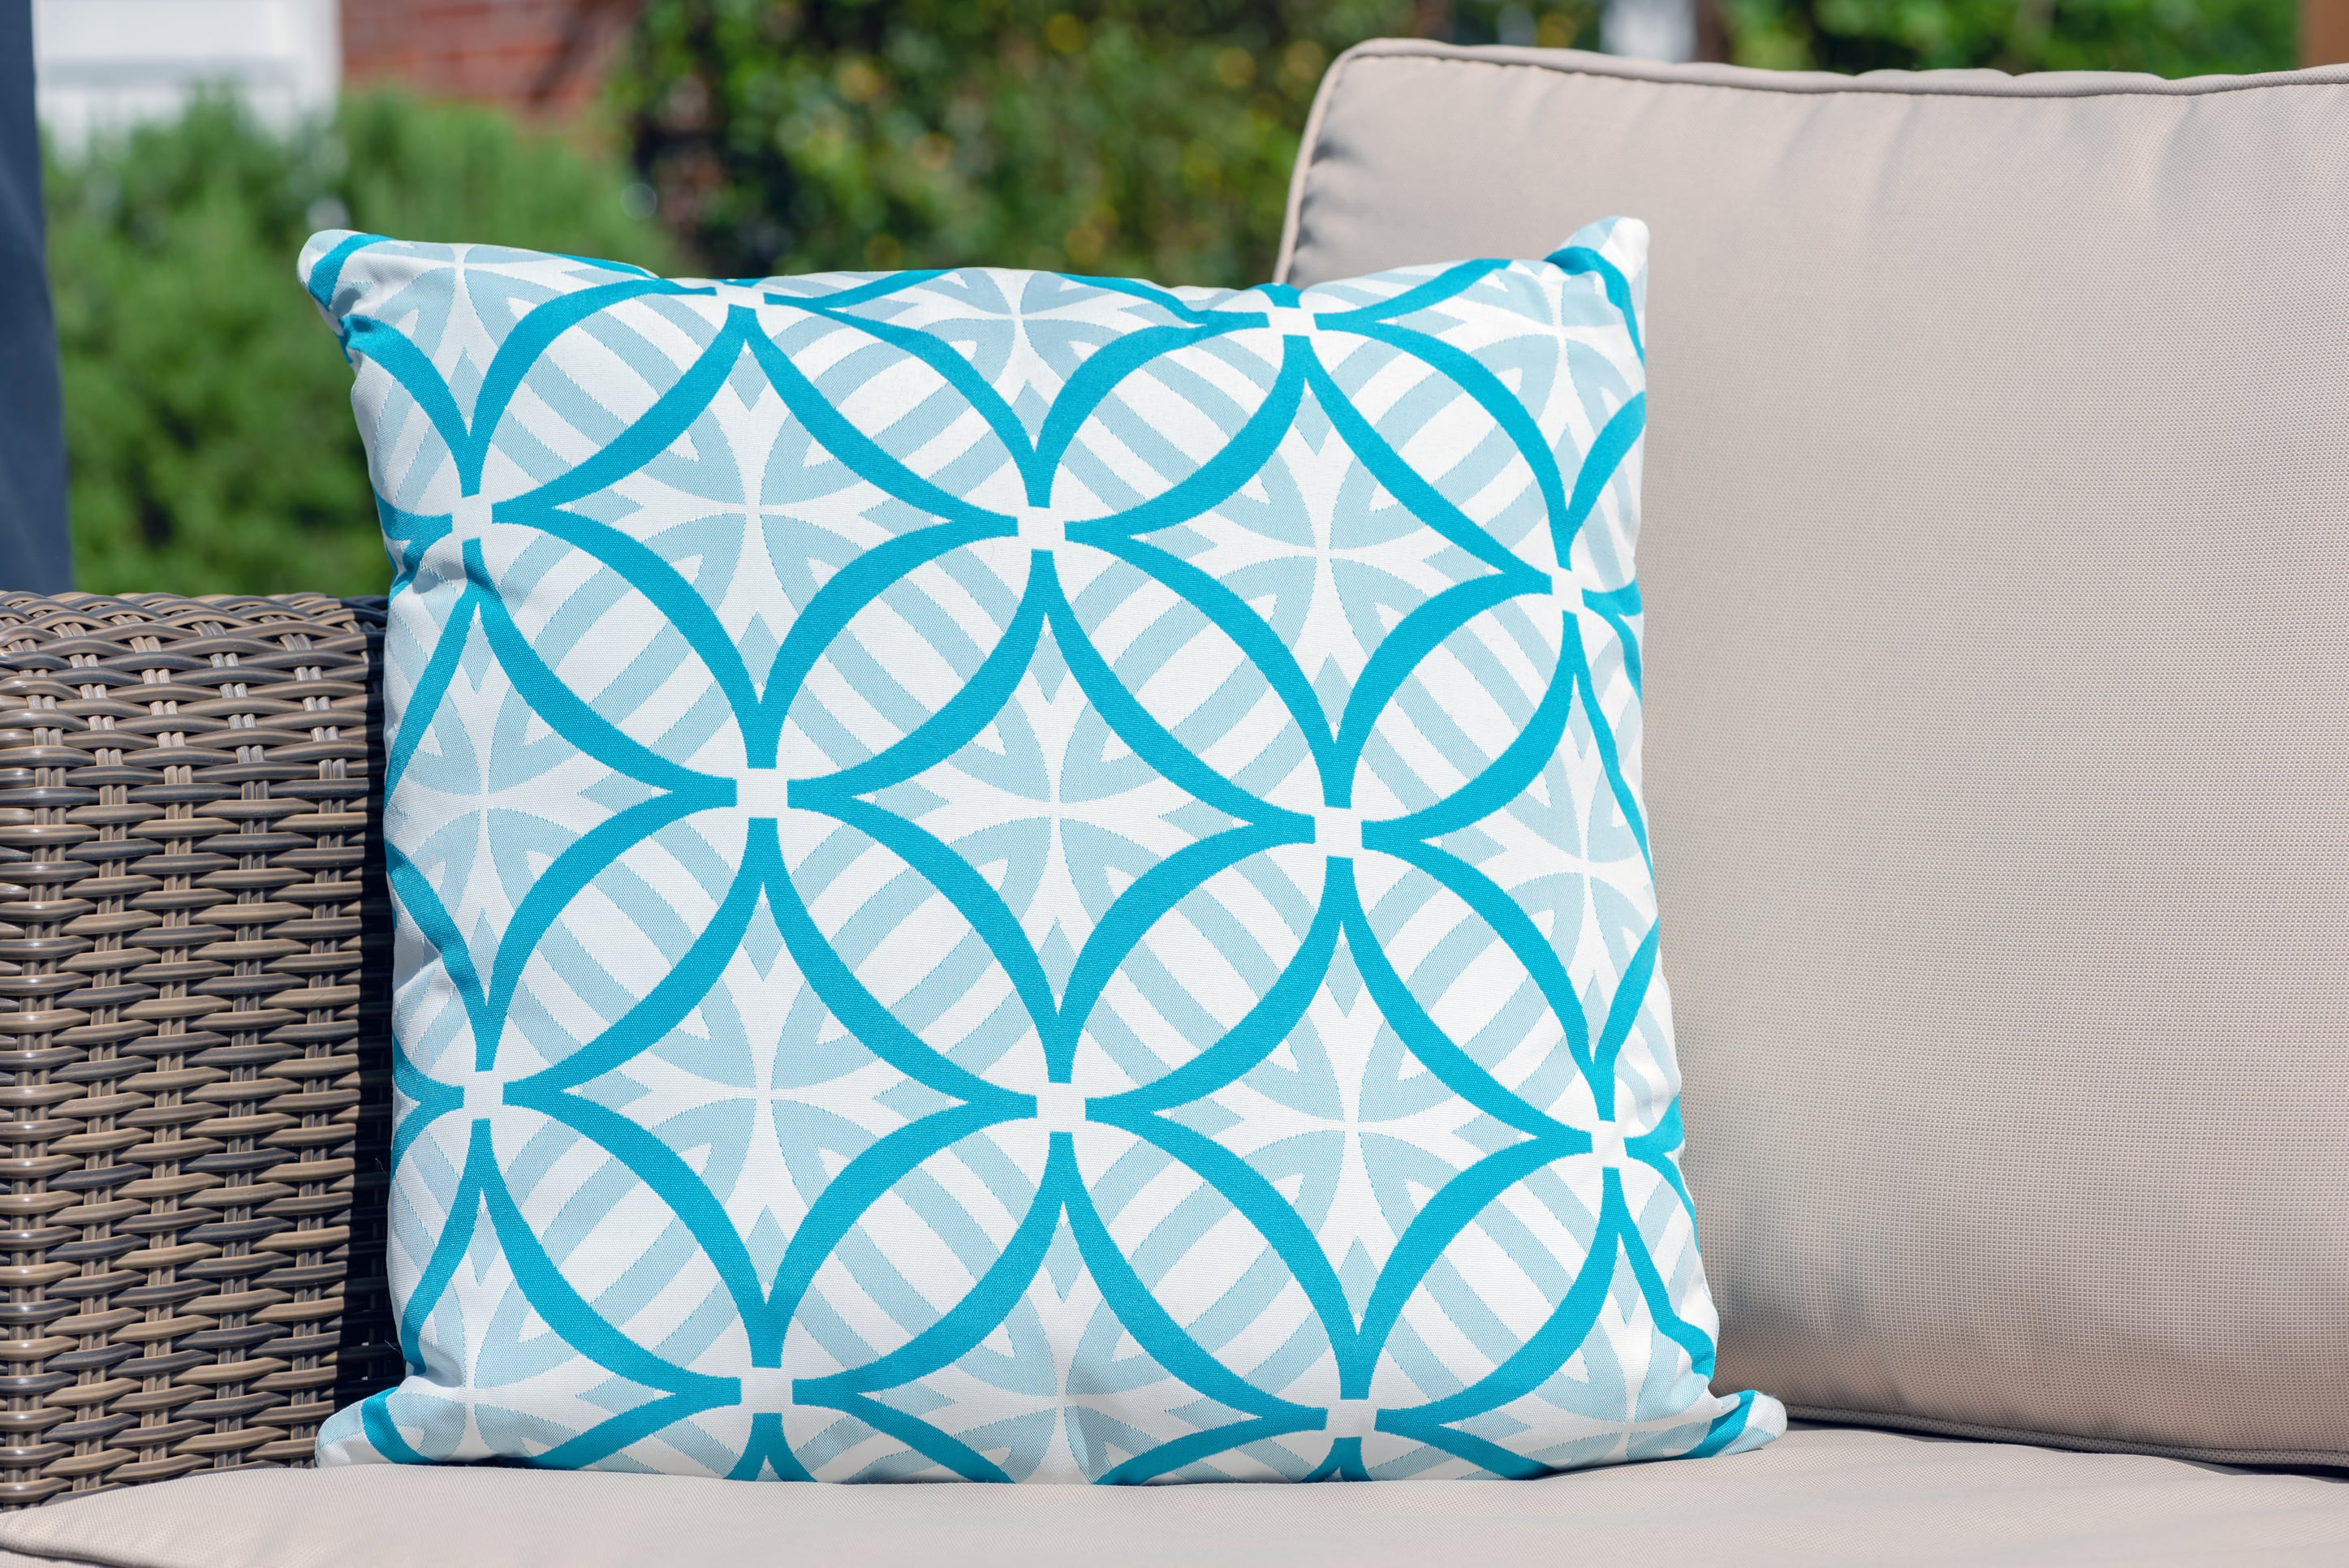 Armadillo Sun waterproof luxury cushion in turquoise and white pattern